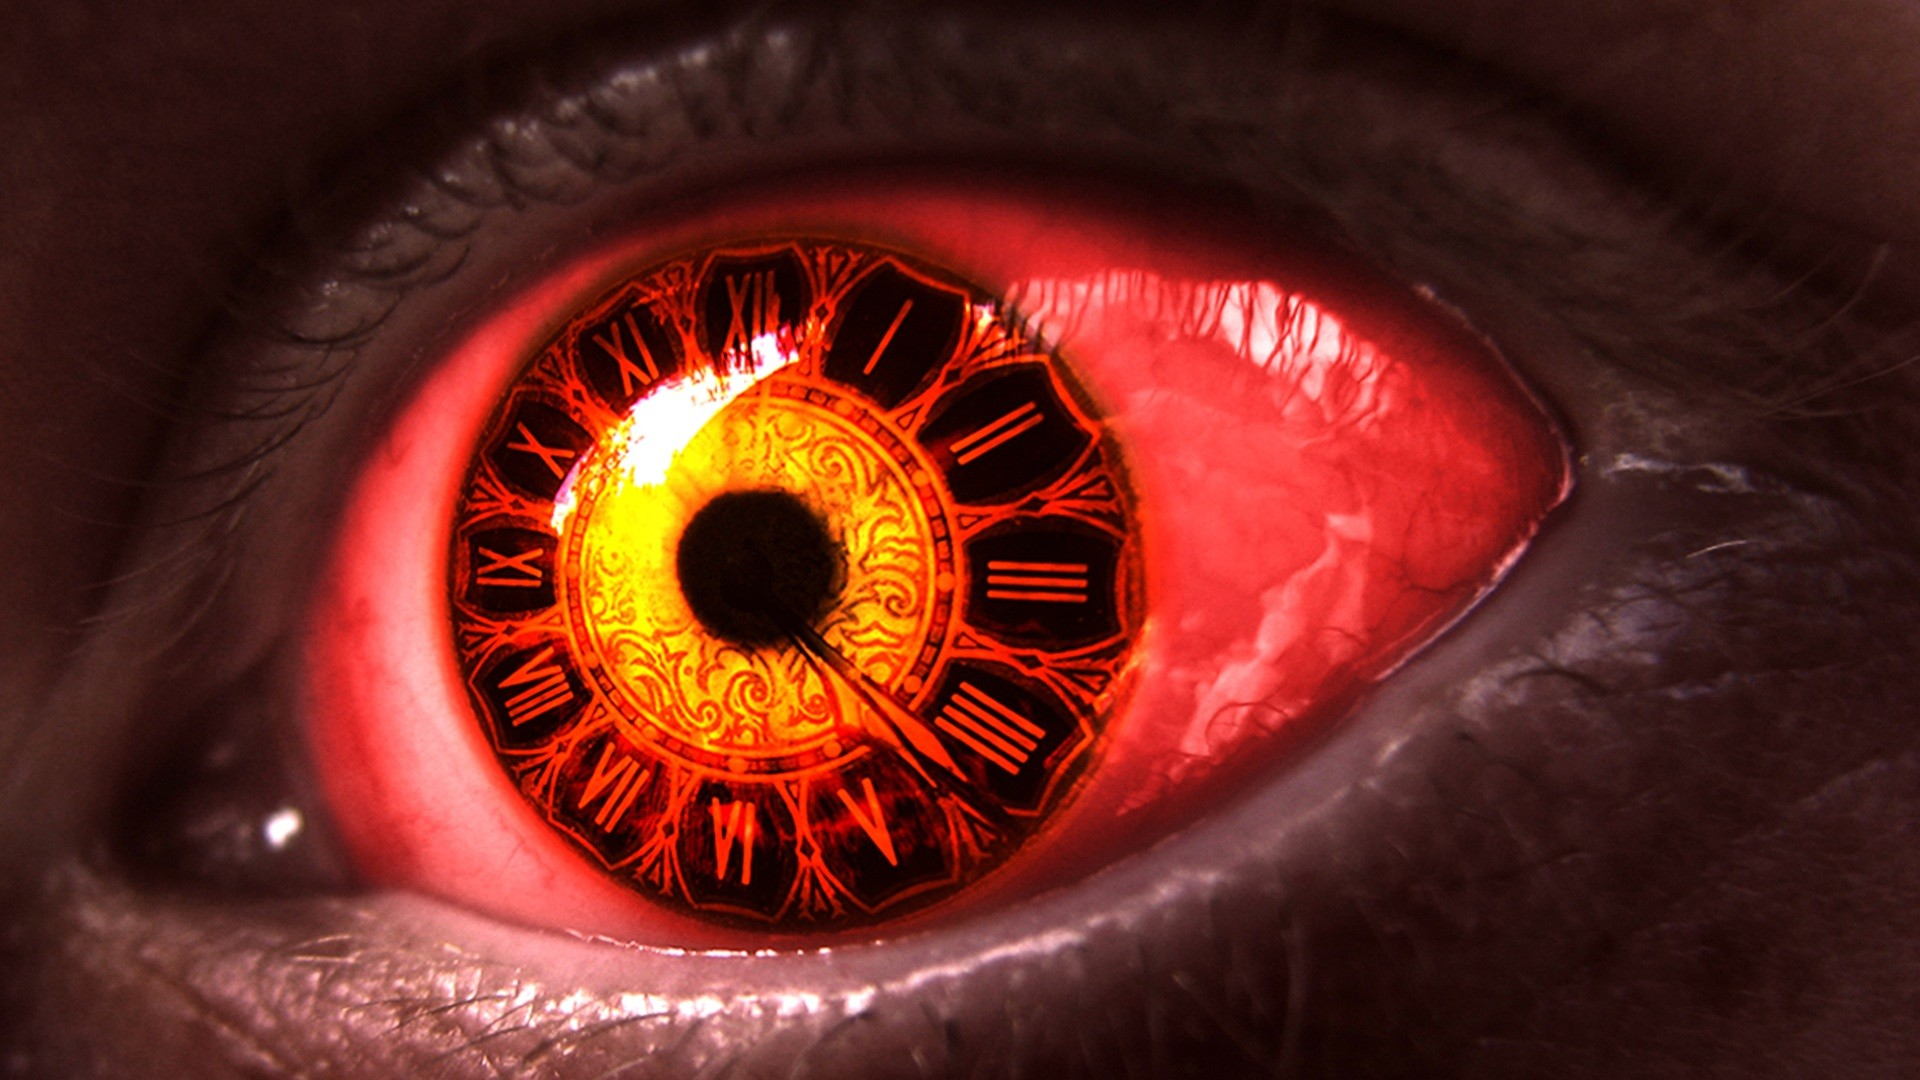 1920x1080 Eyes-of-Time-Horror-Images-wallpaper-wpc5804647